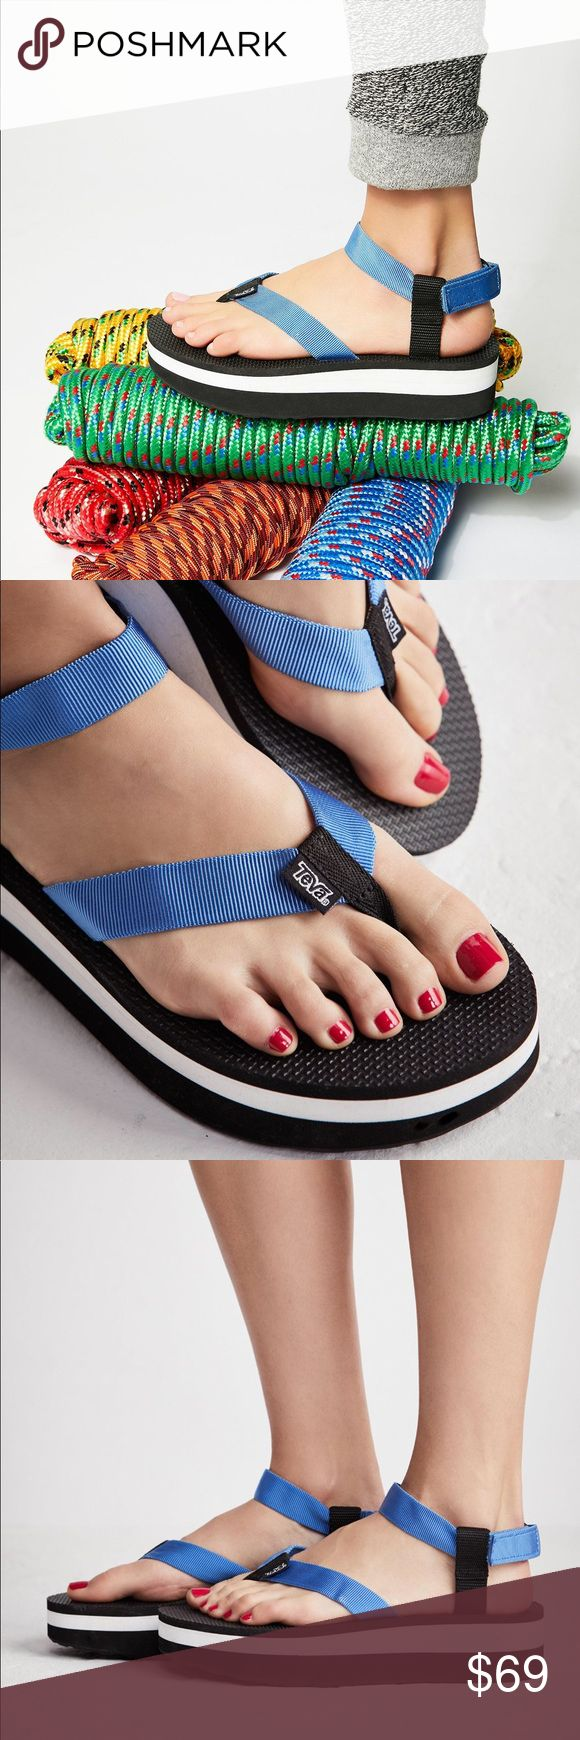 Blue Classic Flatform Sandal The classic Teva flip flop gets an ultra cool, modern update with a flatform design. Comfortable ankle strap with an easily adjustable hook-and-loop fastener Quick-dry polyester upper for easy, oceanside wear. Care/Import Import by Teva X Free People  Measurements Sole: 2.25 in Free People Shoes Sandals